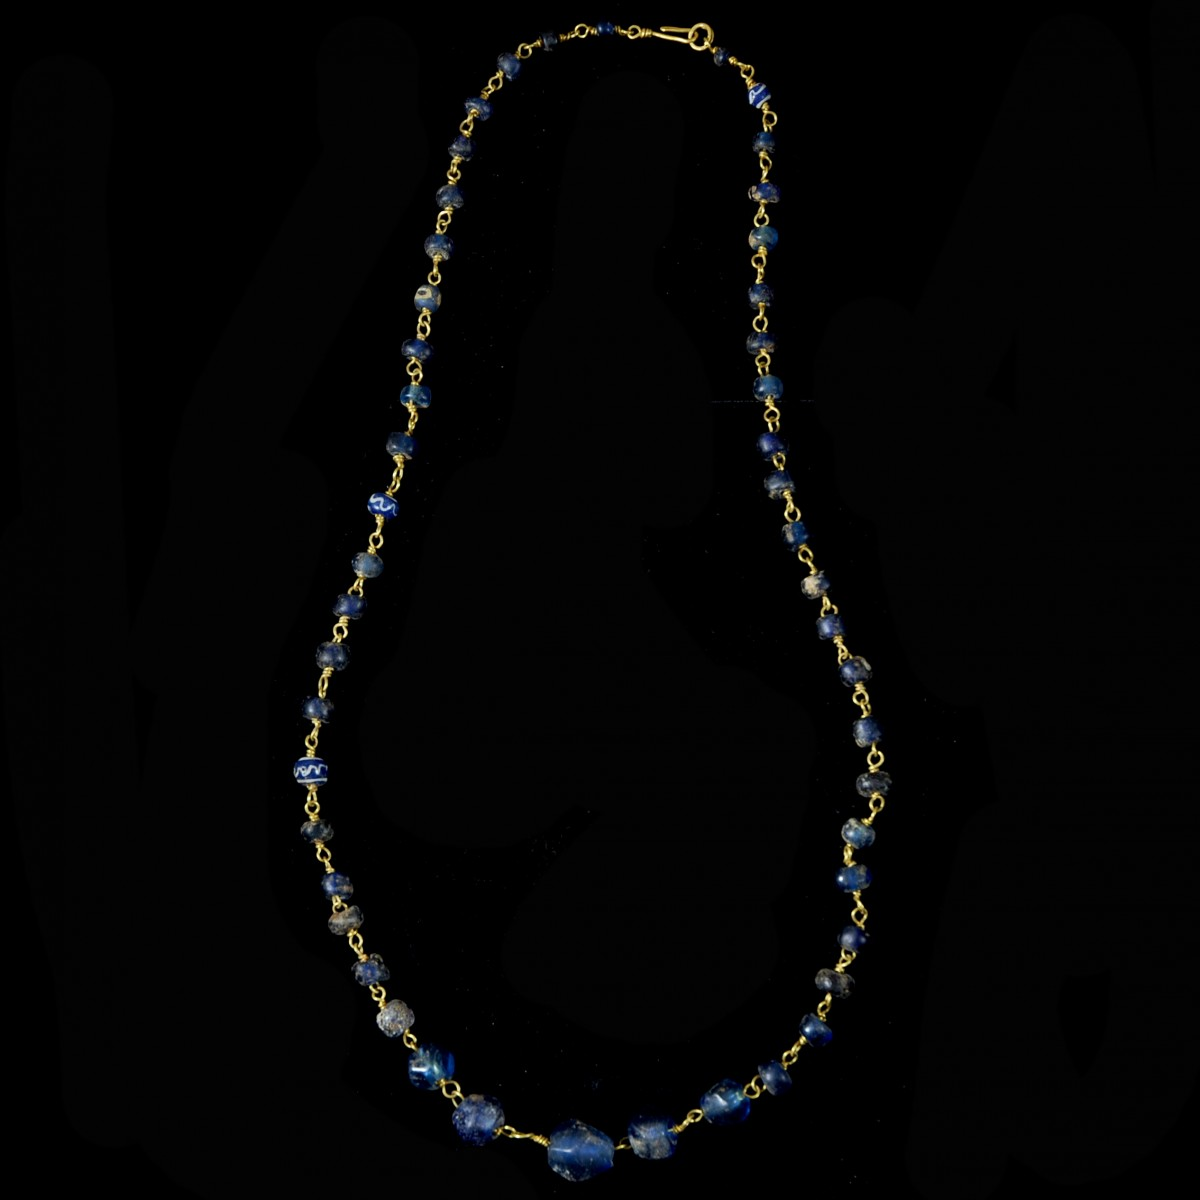 Roman gold necklace blue glass beads